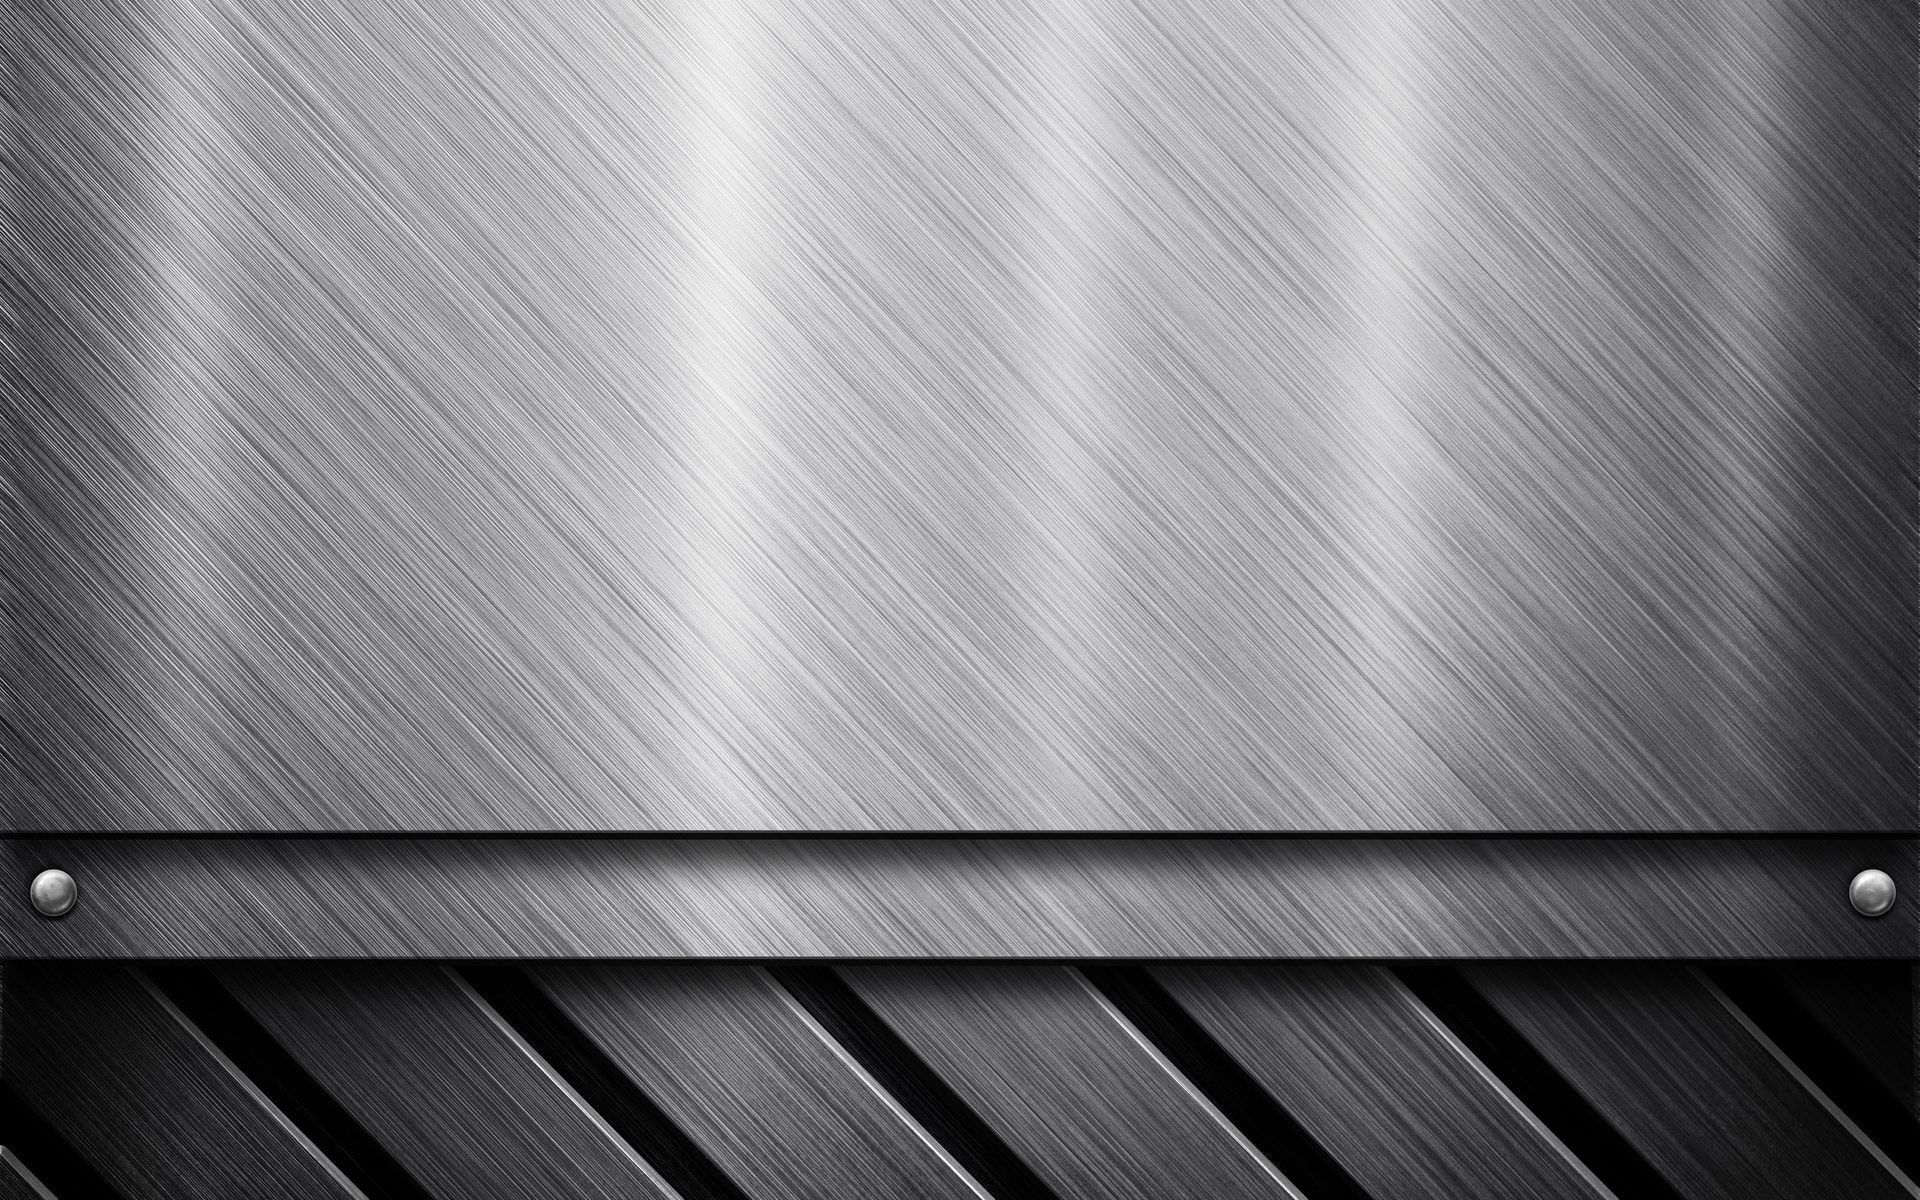 2560x1600 stainless steel wallpaper - weddingdressin.com